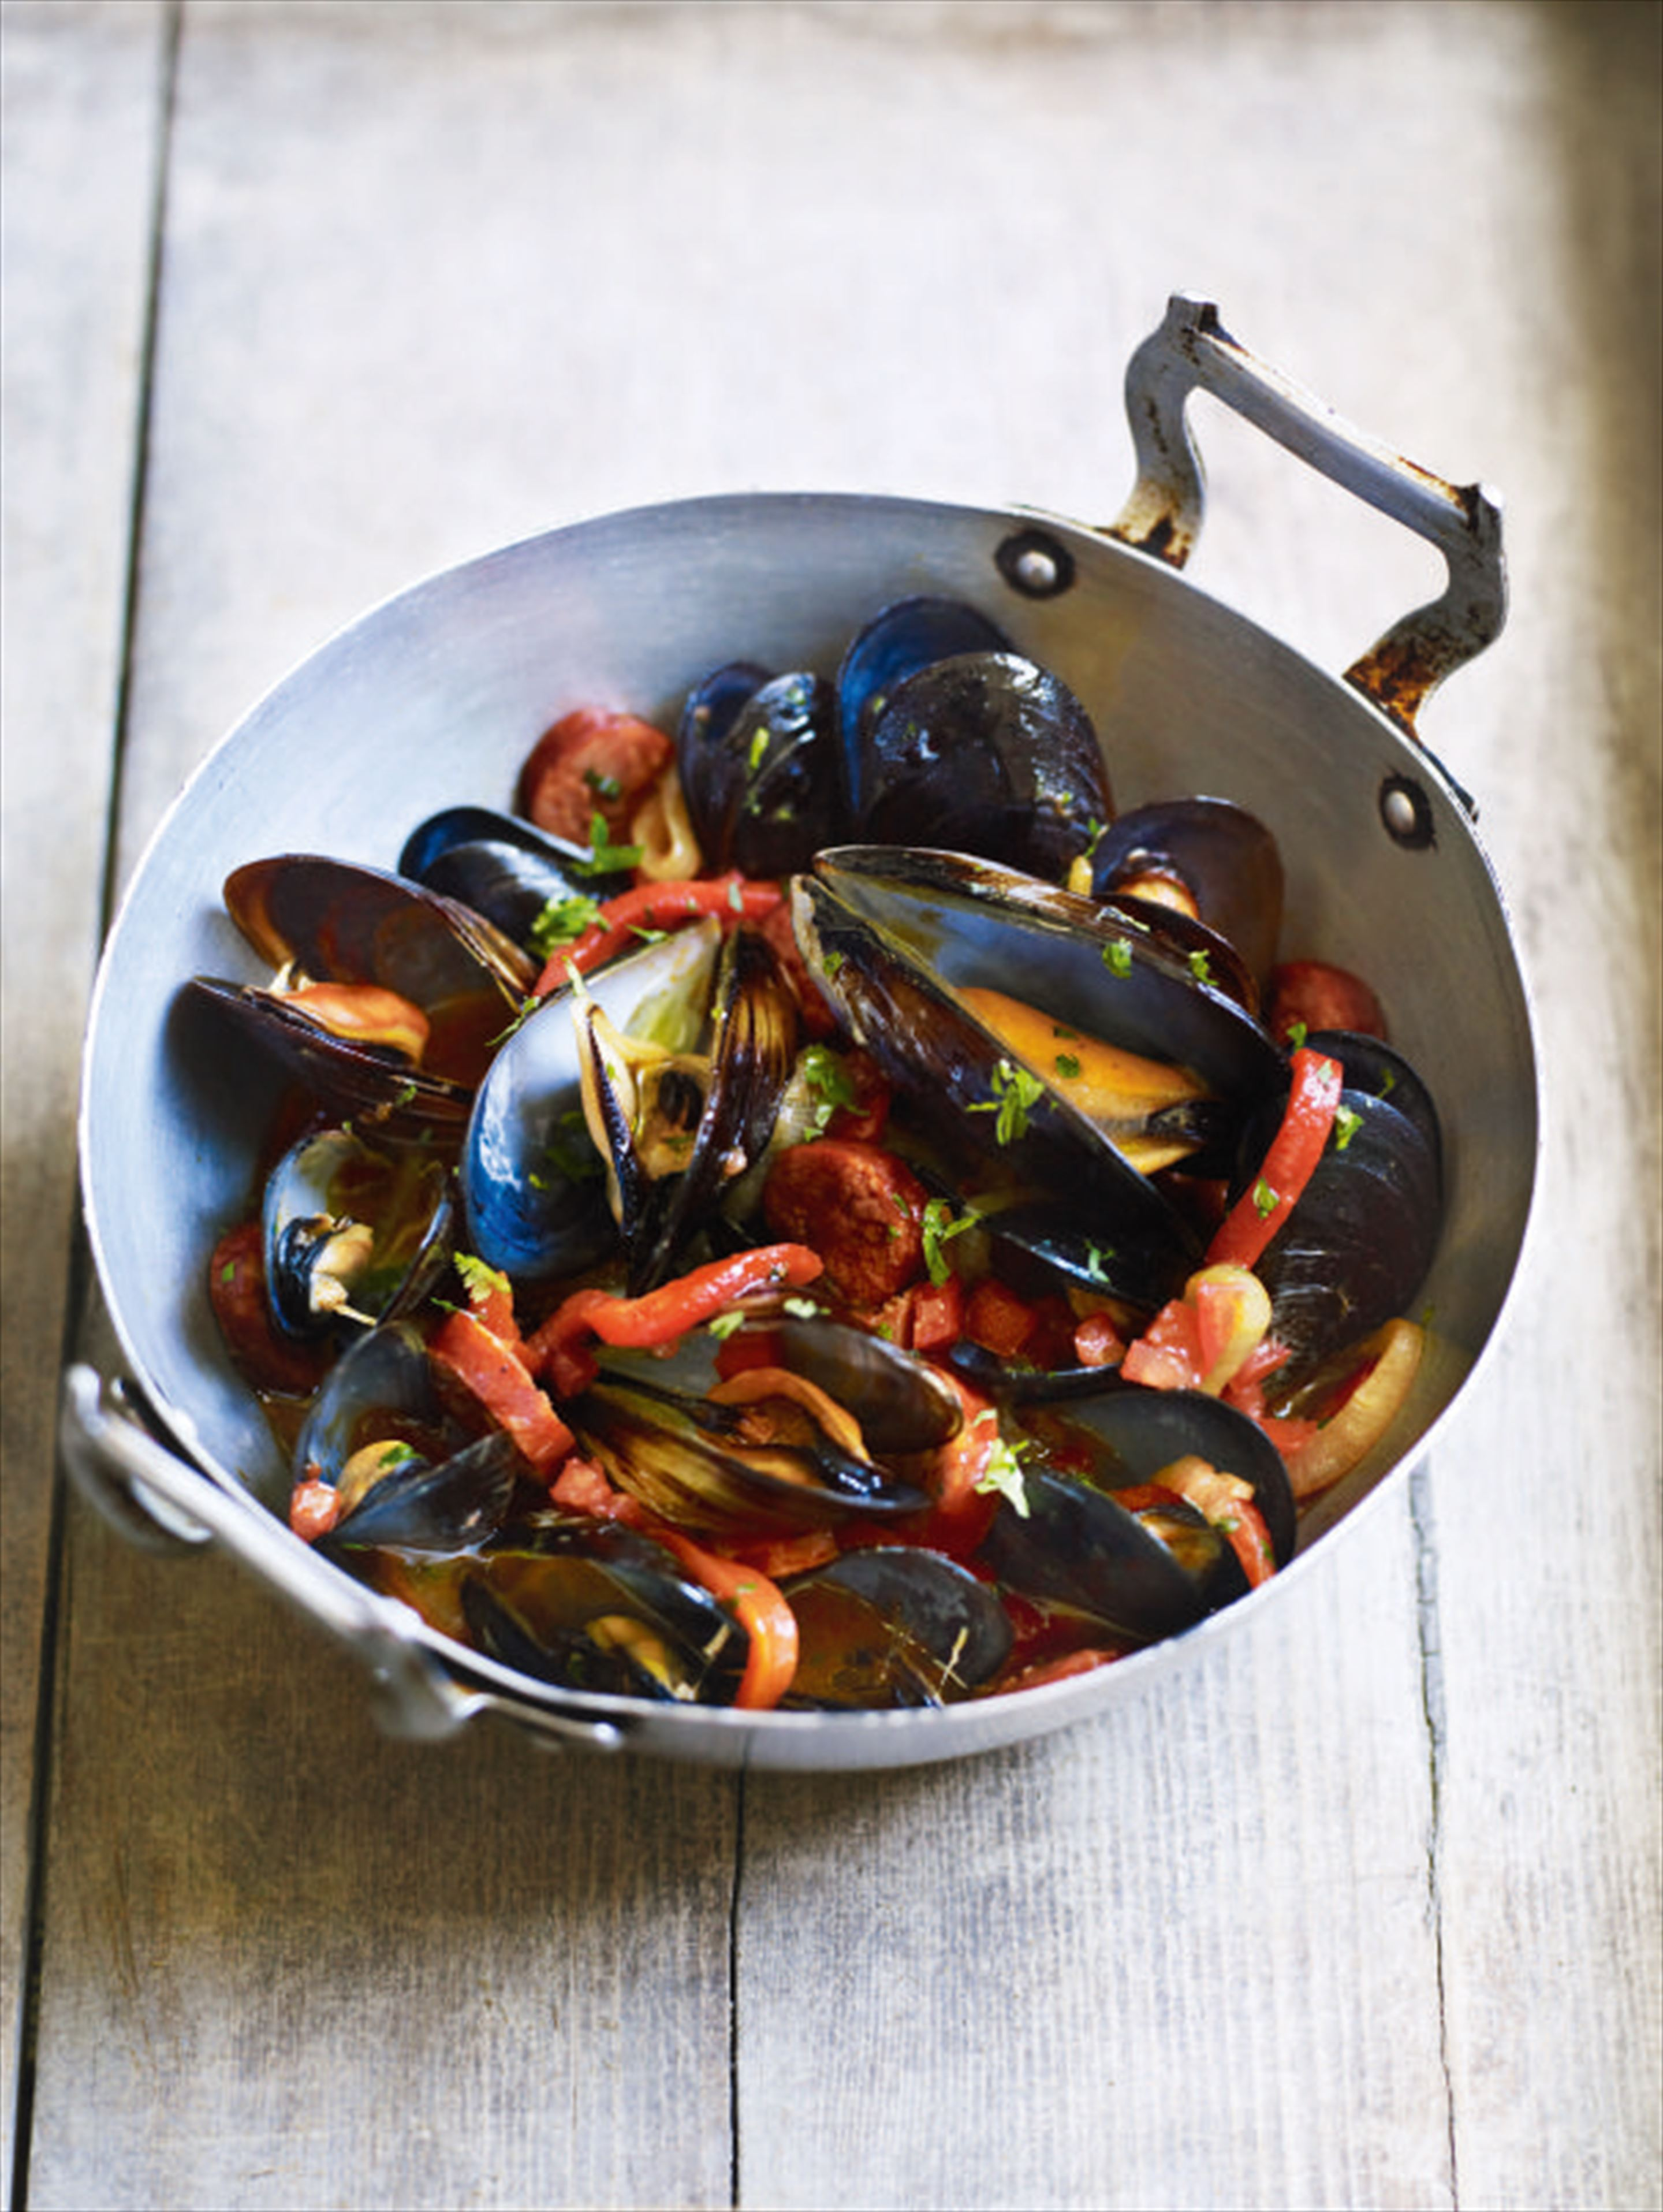 Mussels with chouriço, tomato and peppers